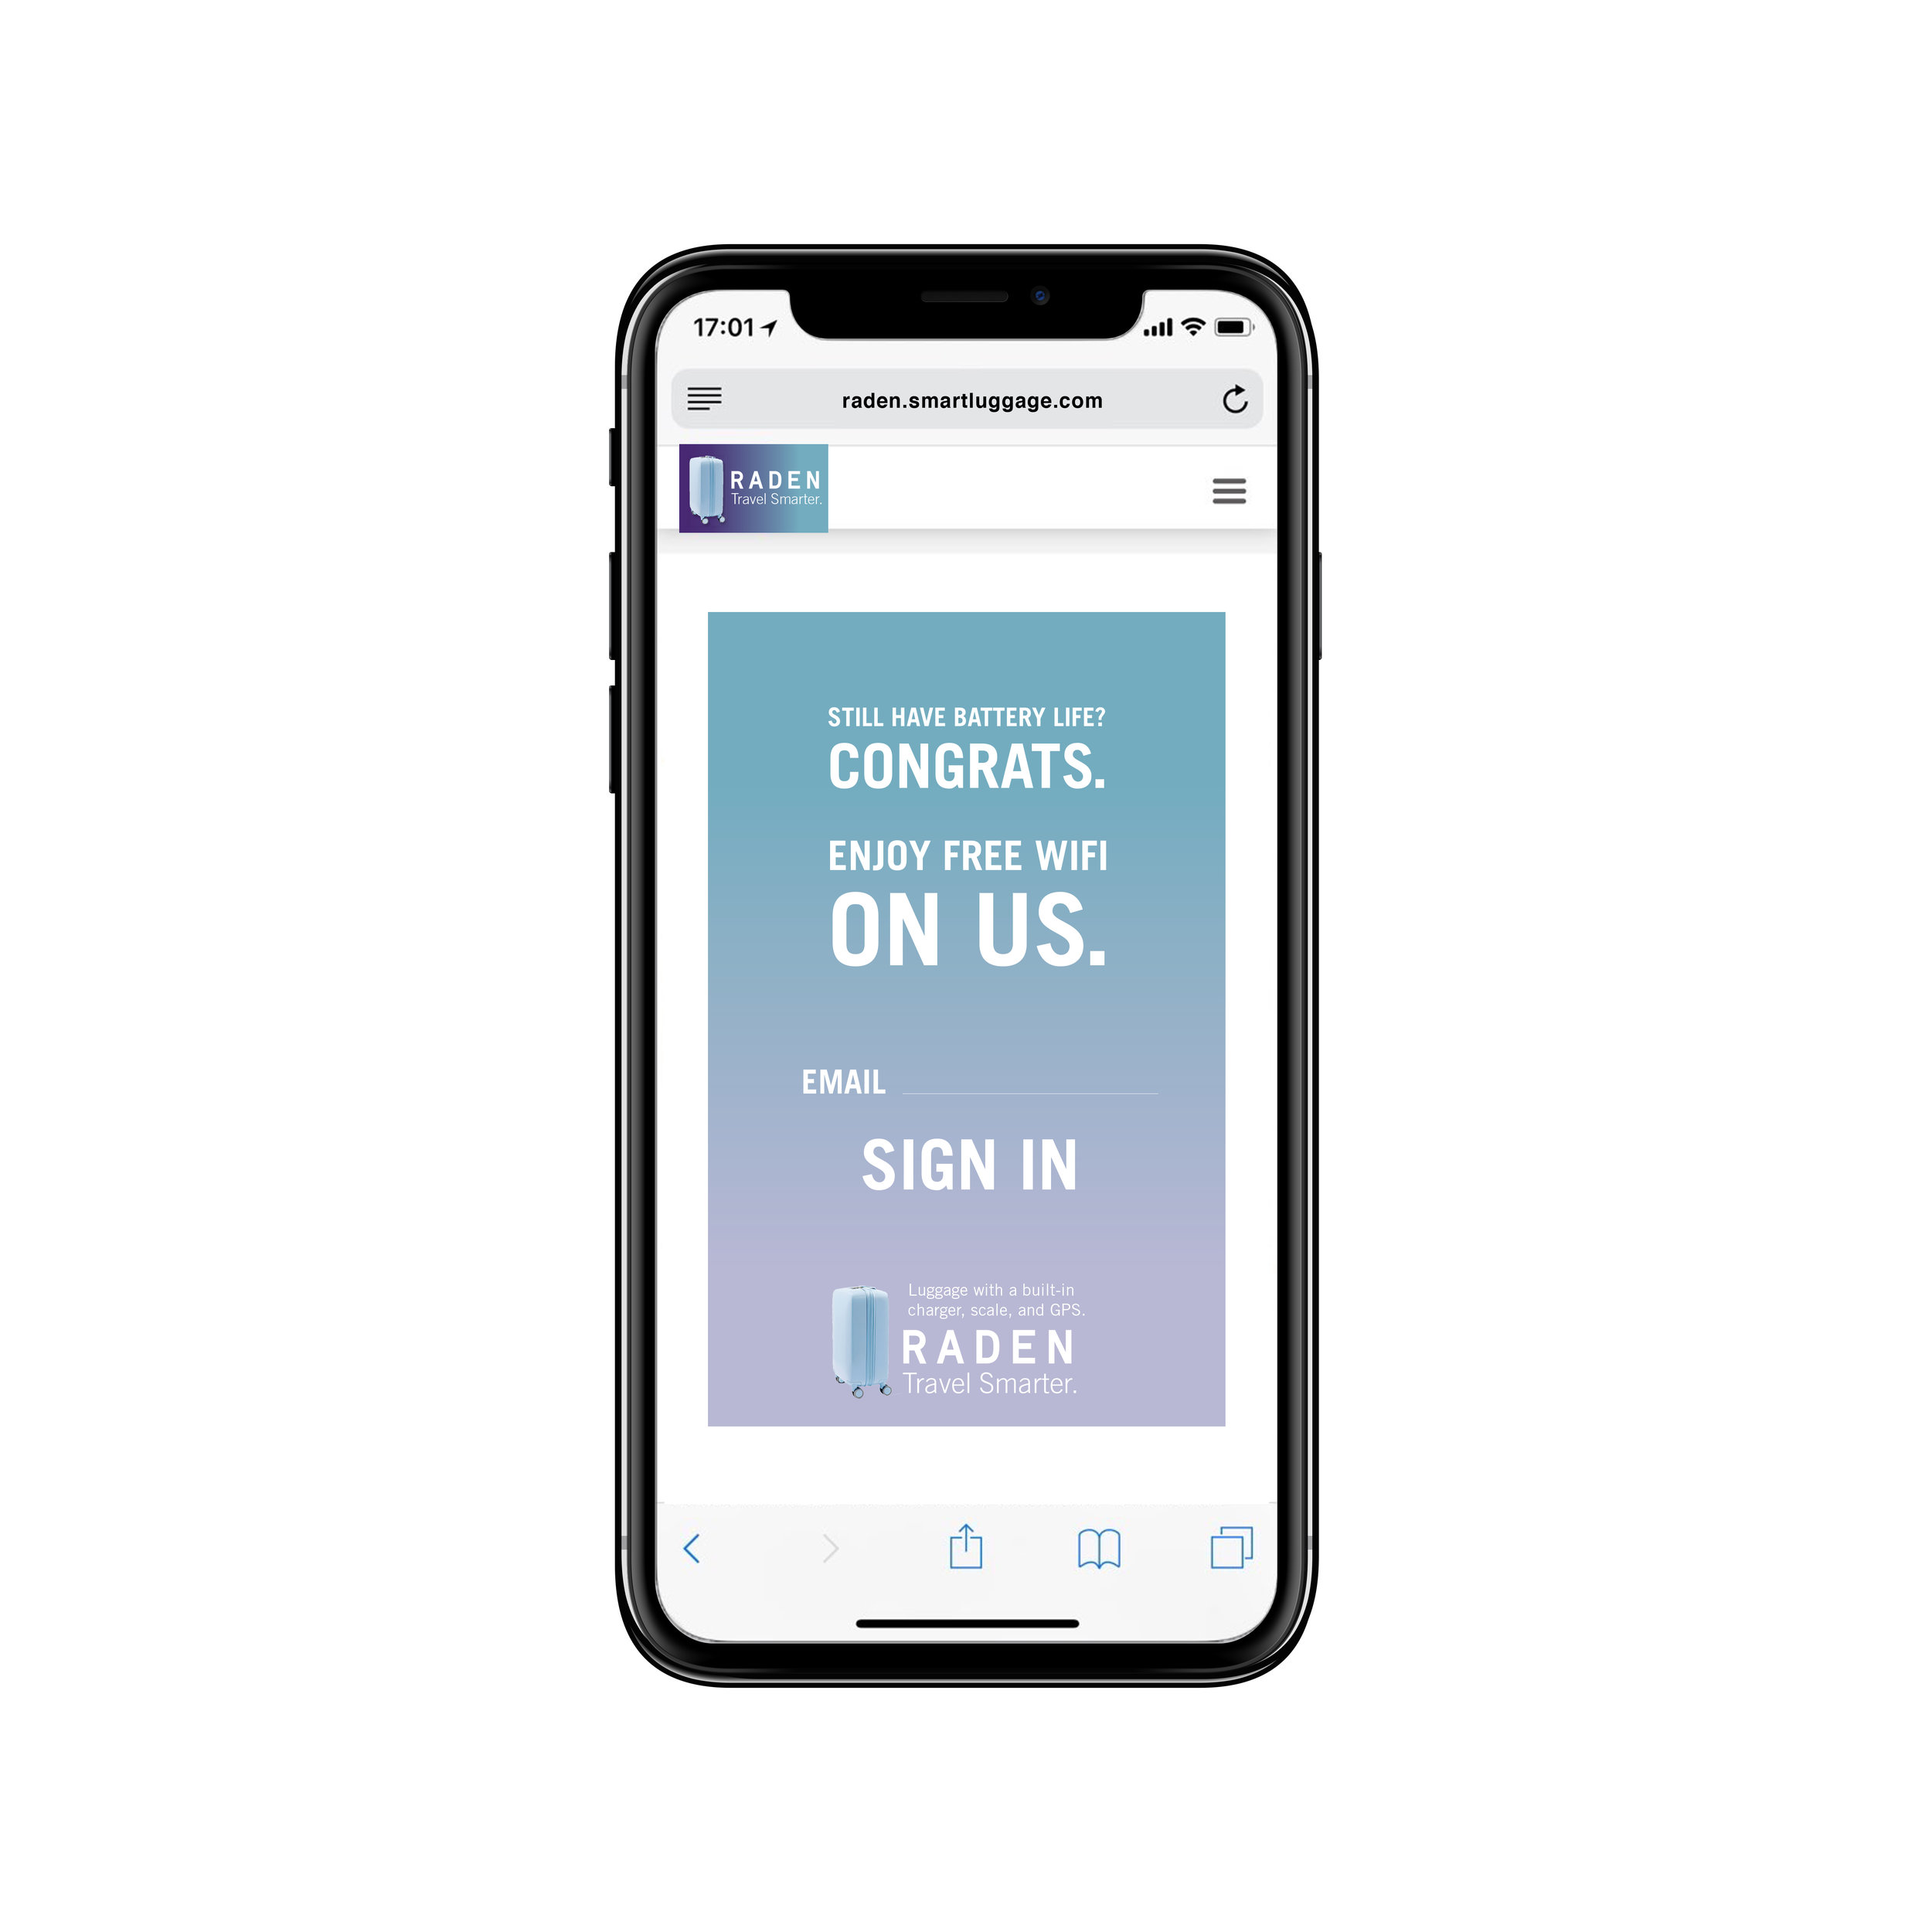 iPhone X Mockup_map airport_sign in.jpg